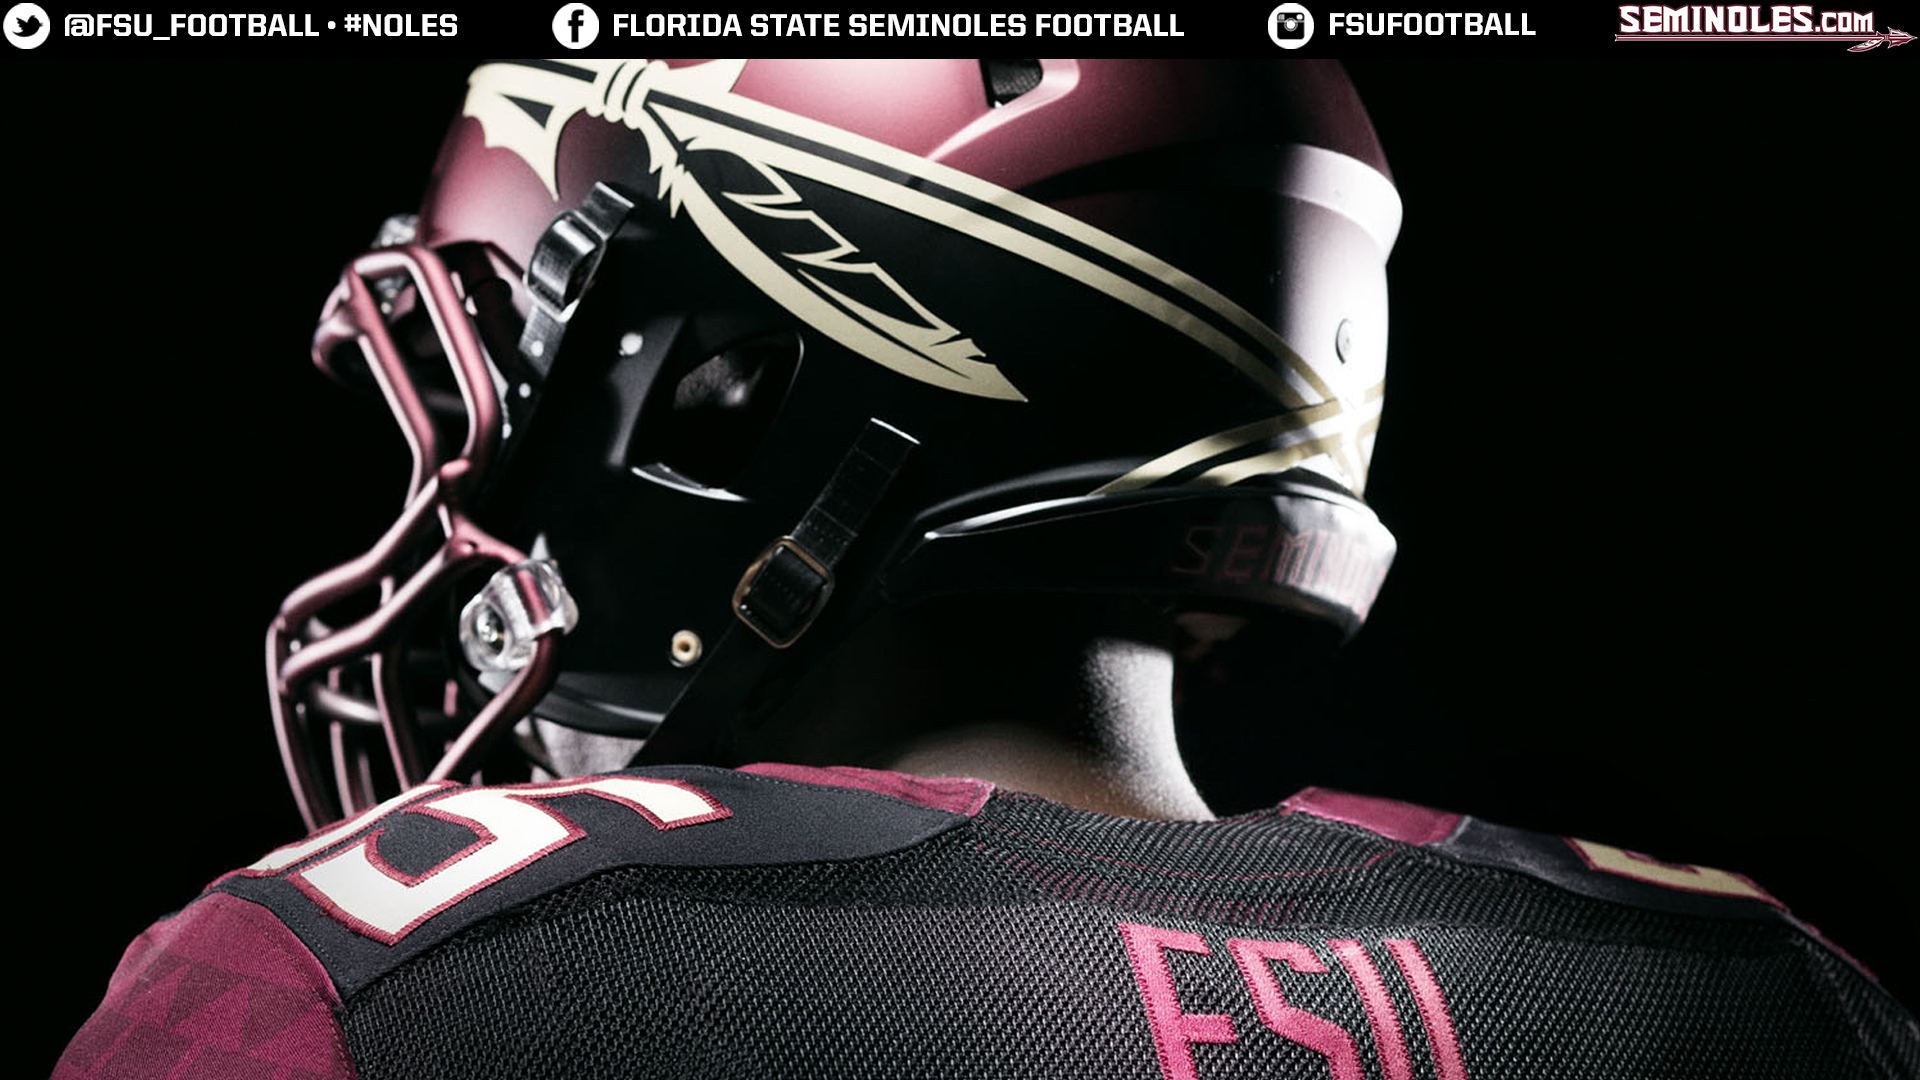 Florida State Seminoles Football Wallpaper